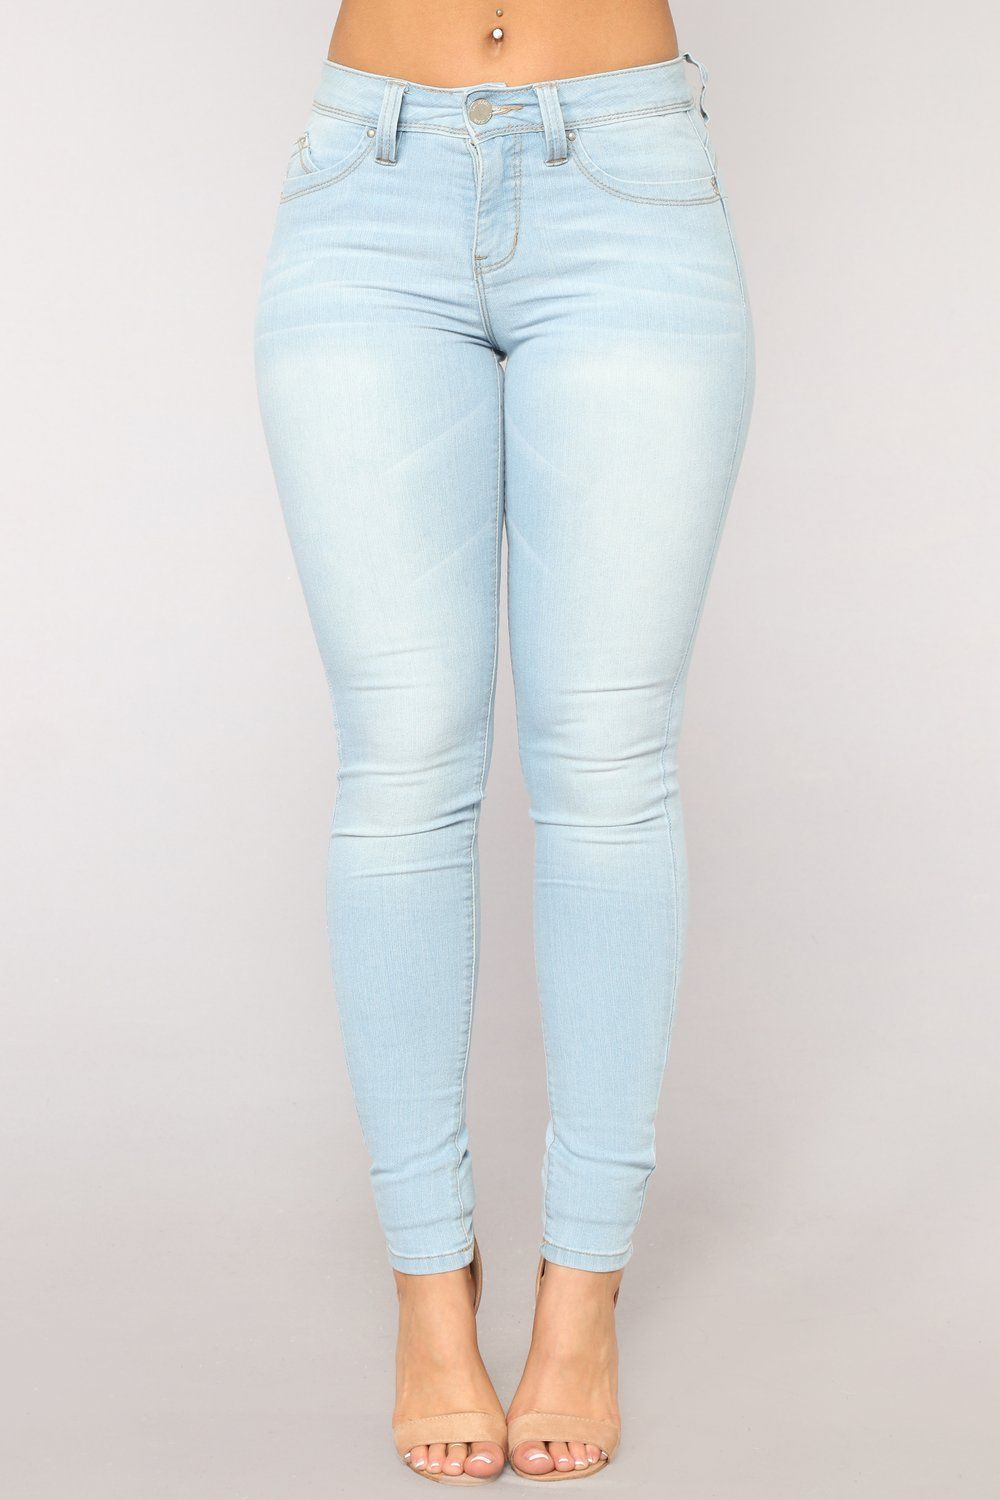 ea4172c7266 The Good Life Mid Rise Skinny Jeans - Light Blue Wash